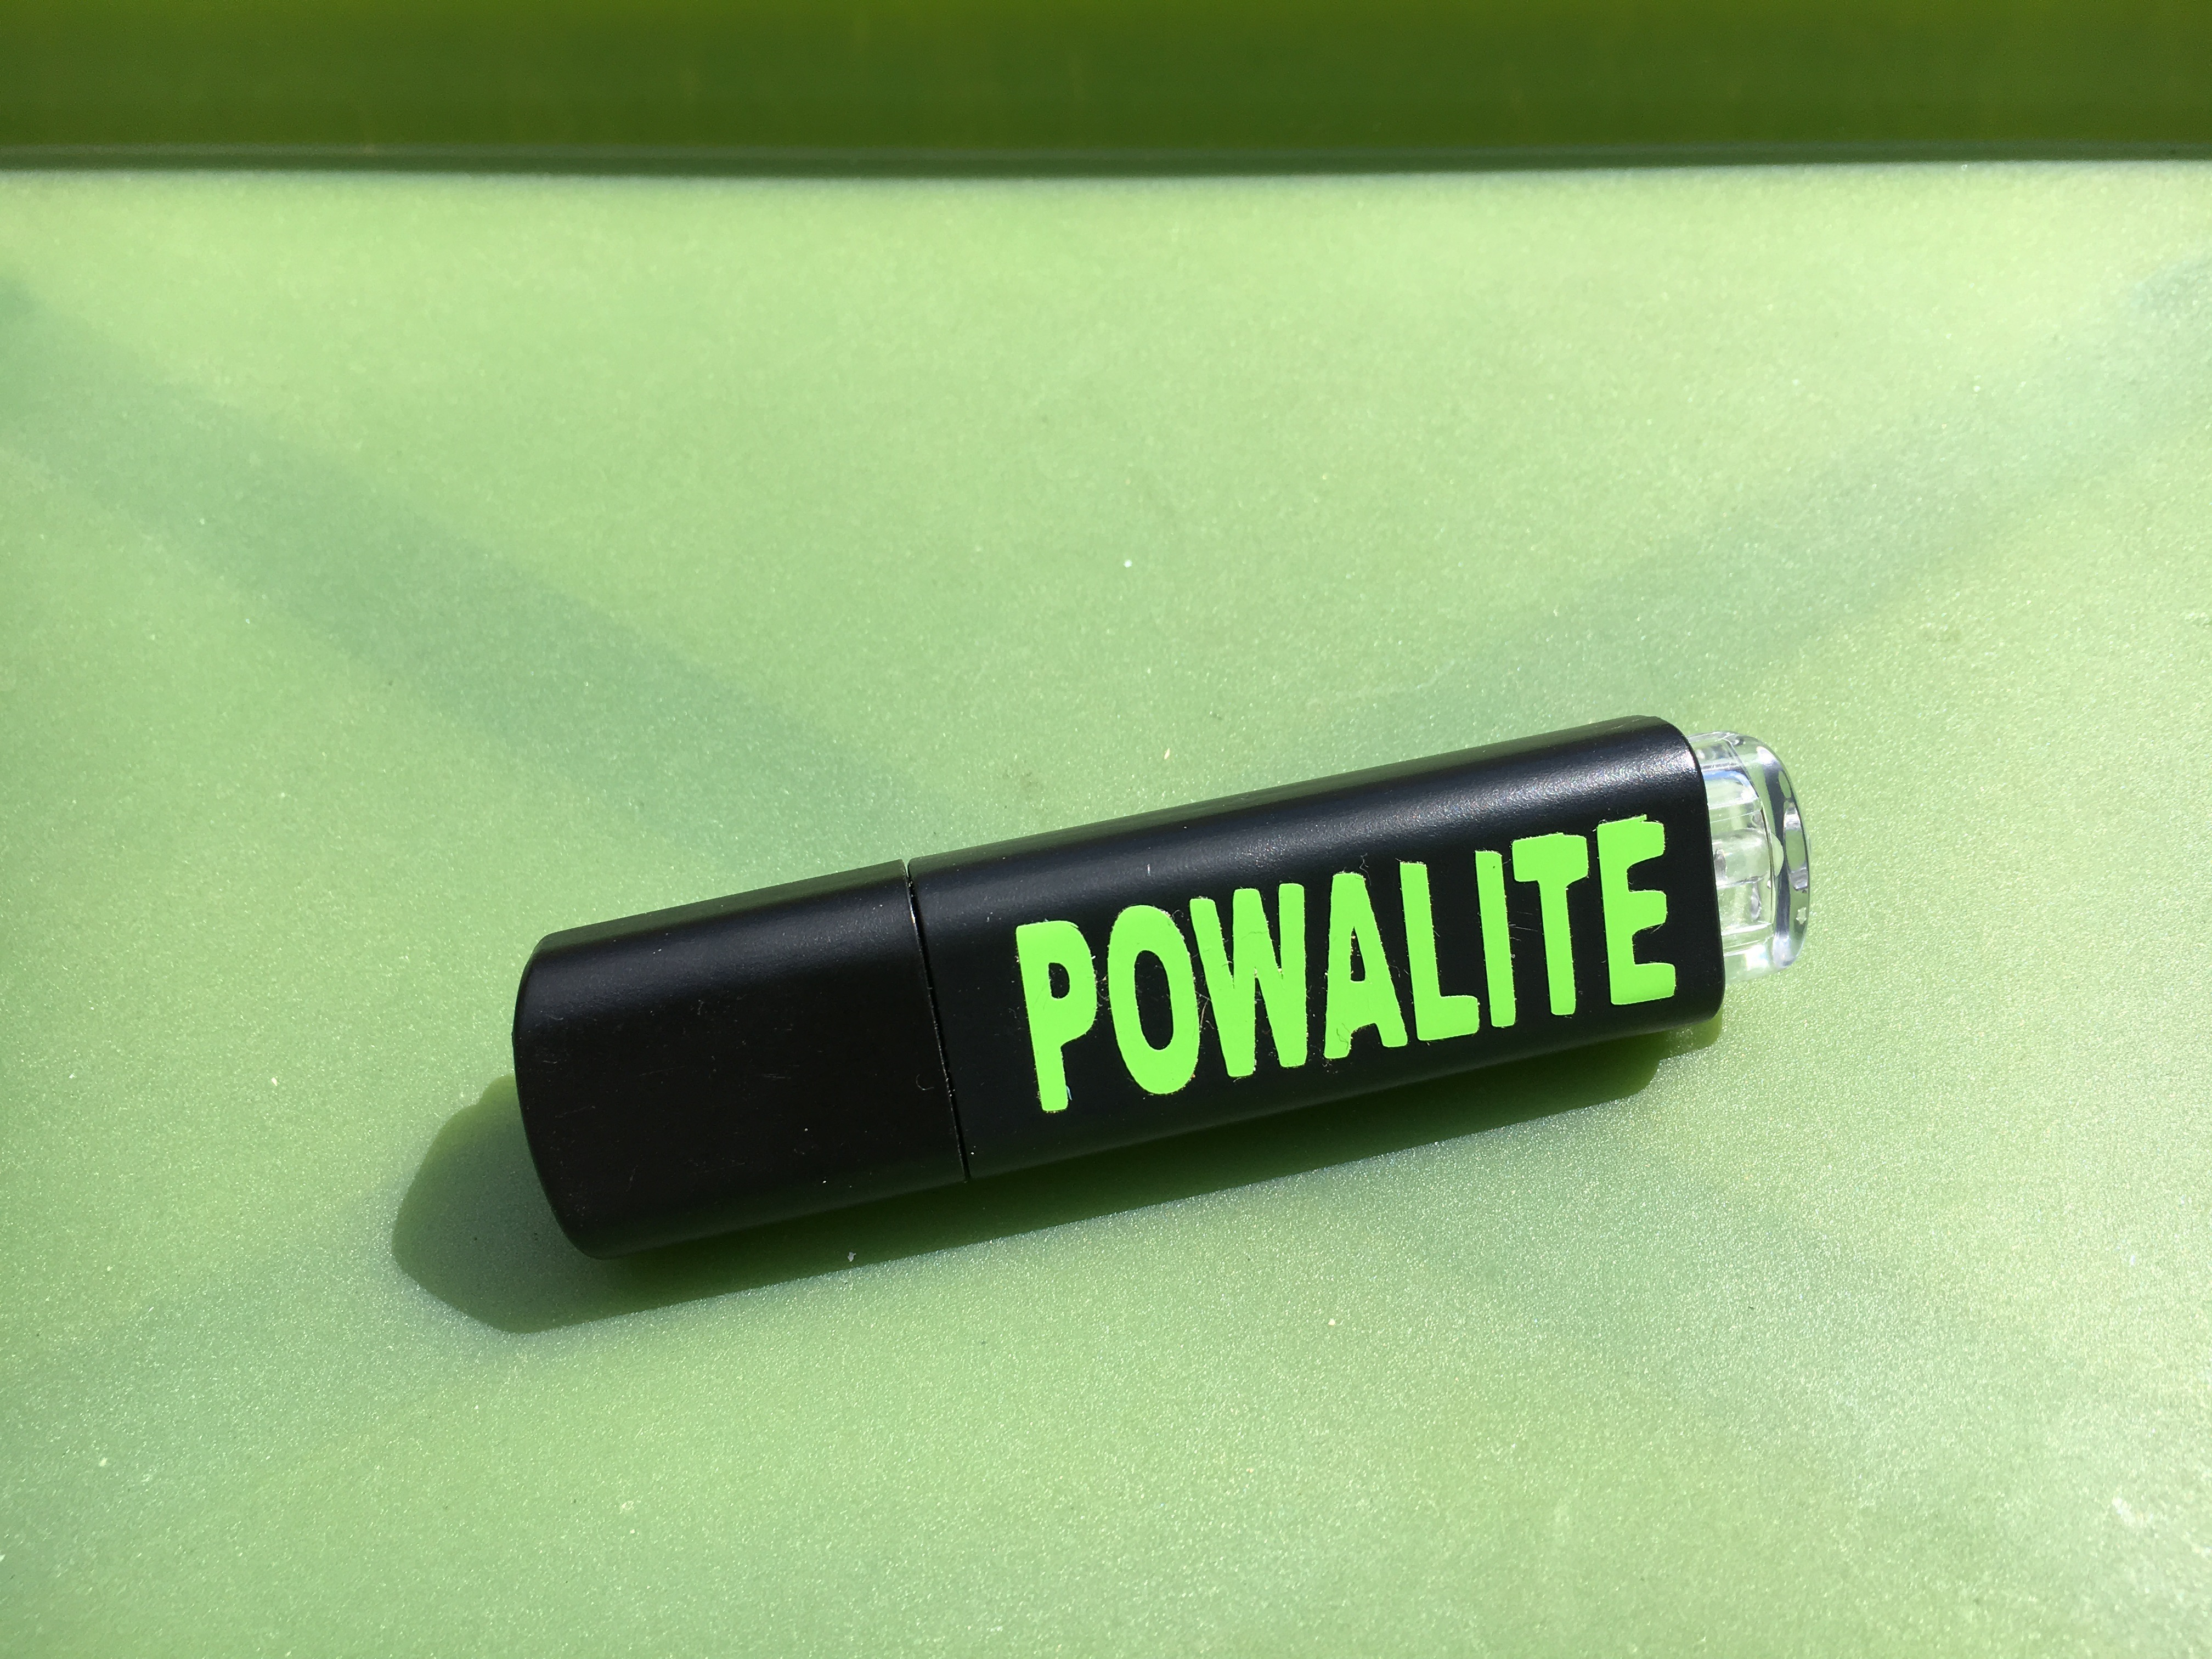 POWALITE USB CHARGEABLE